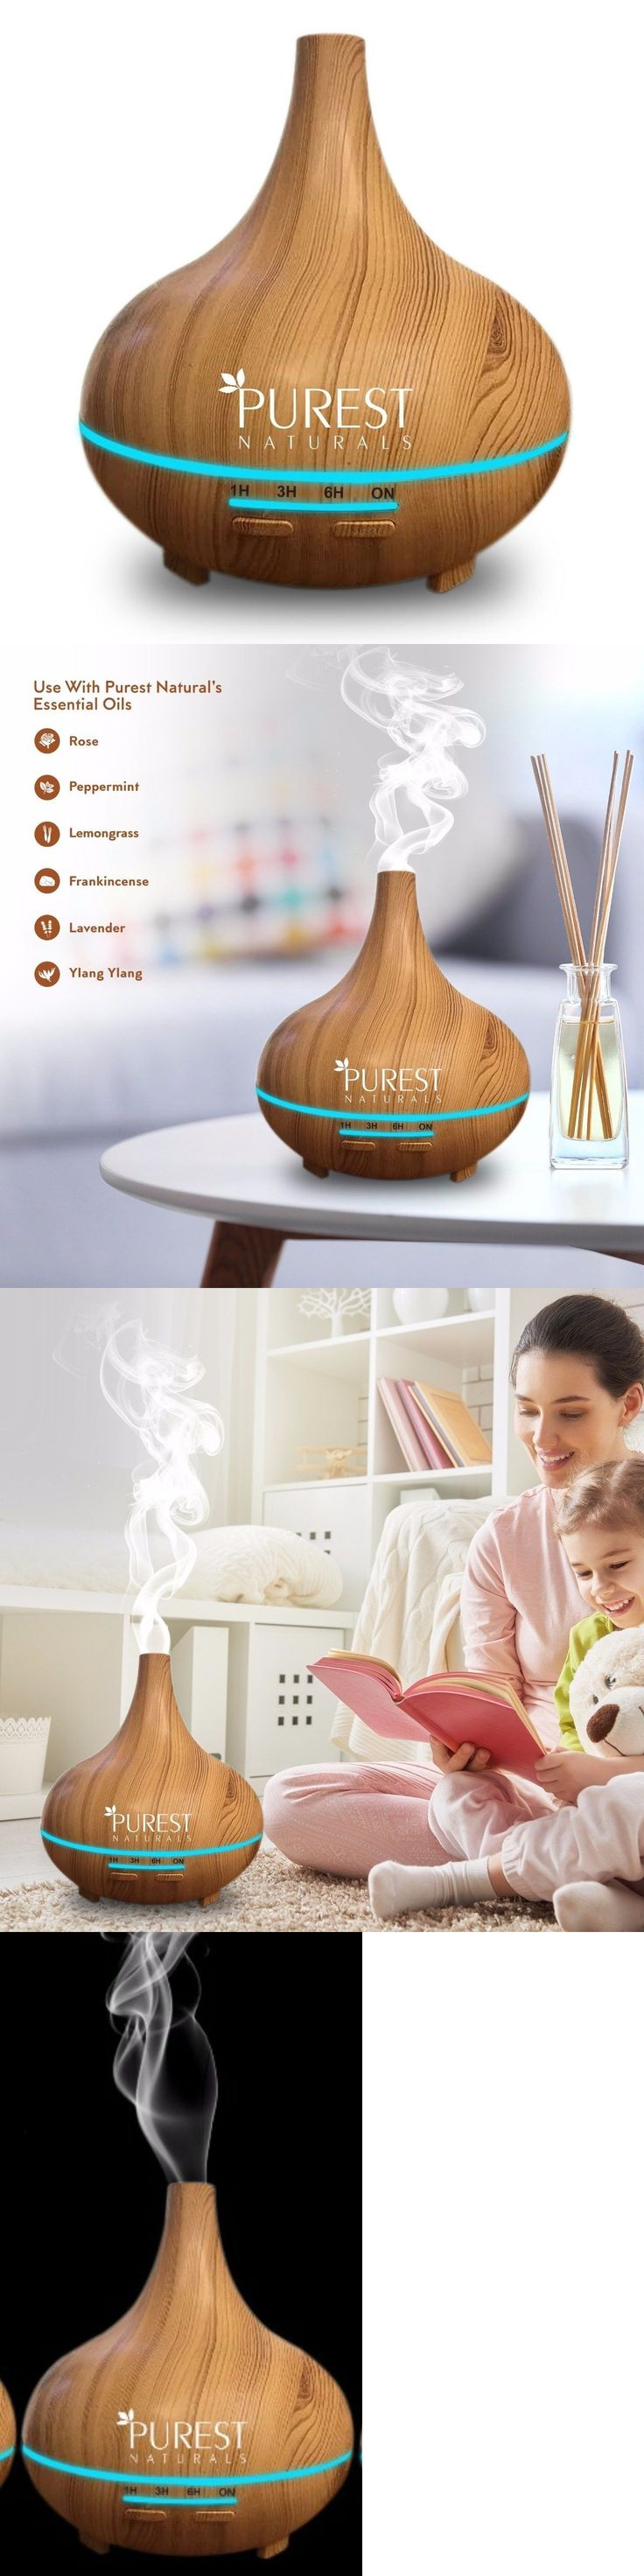 Essential Oils and Diffusers 20553: Cool Mist Diffuser 300Ml Air Aroma Home Essential Oil Aromatherapy Humidifier Us -> BUY IT NOW ONLY: $34.99 on eBay!